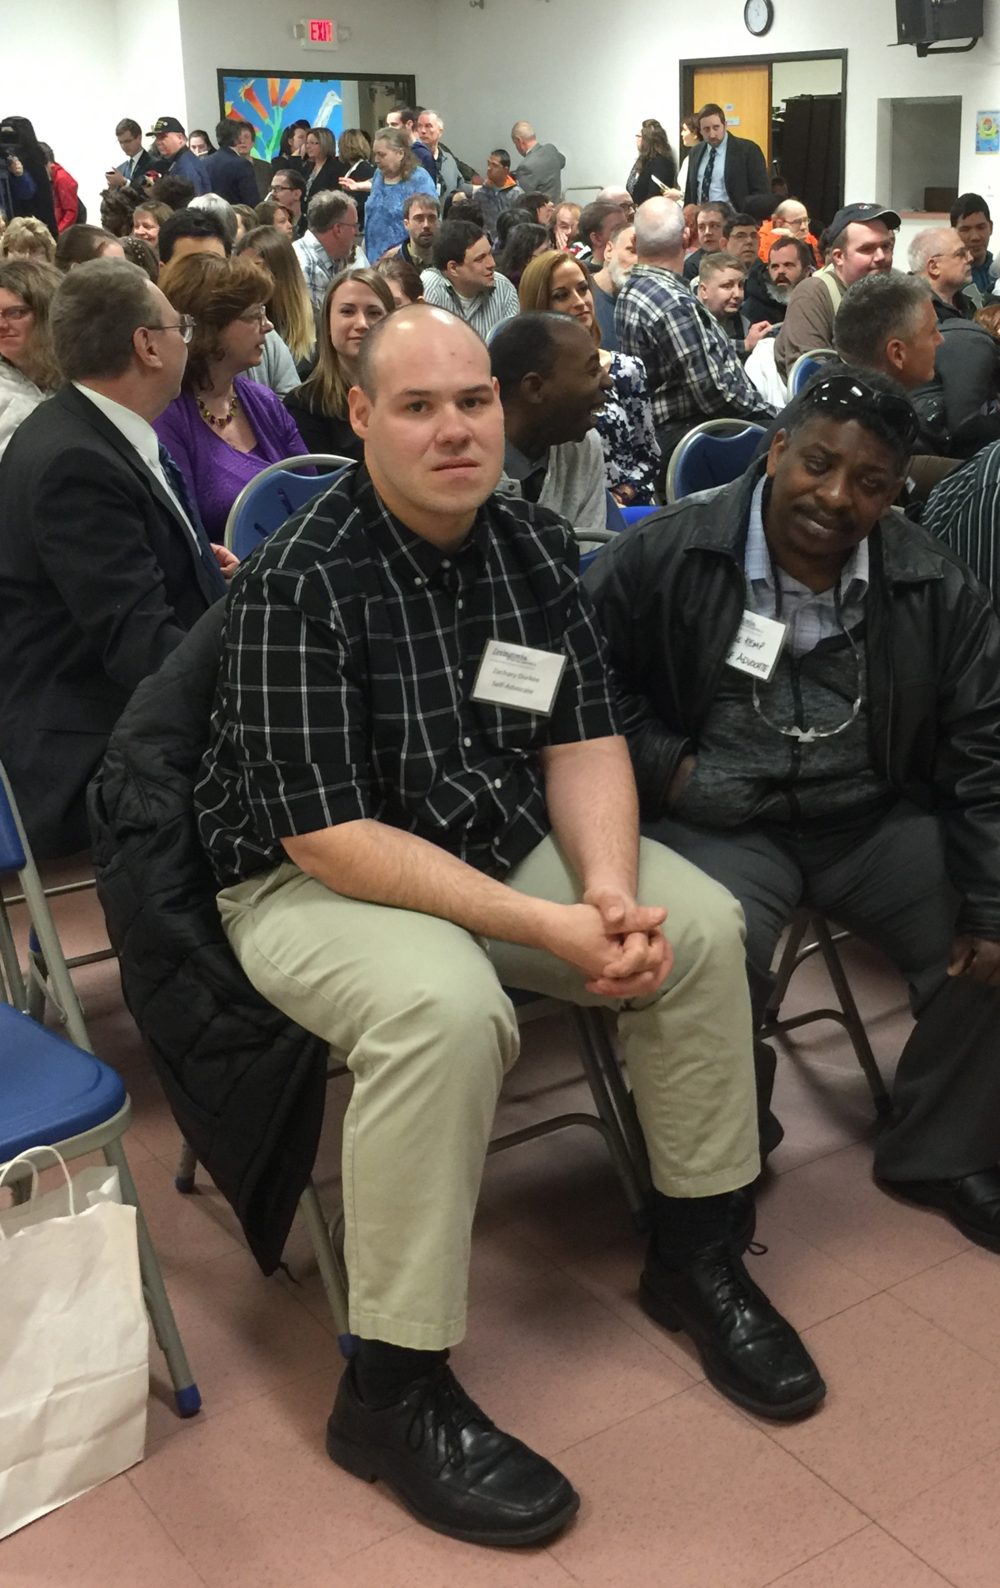 Lexington Self-Advocates Zach Durkee and Jose Kemp in the front row